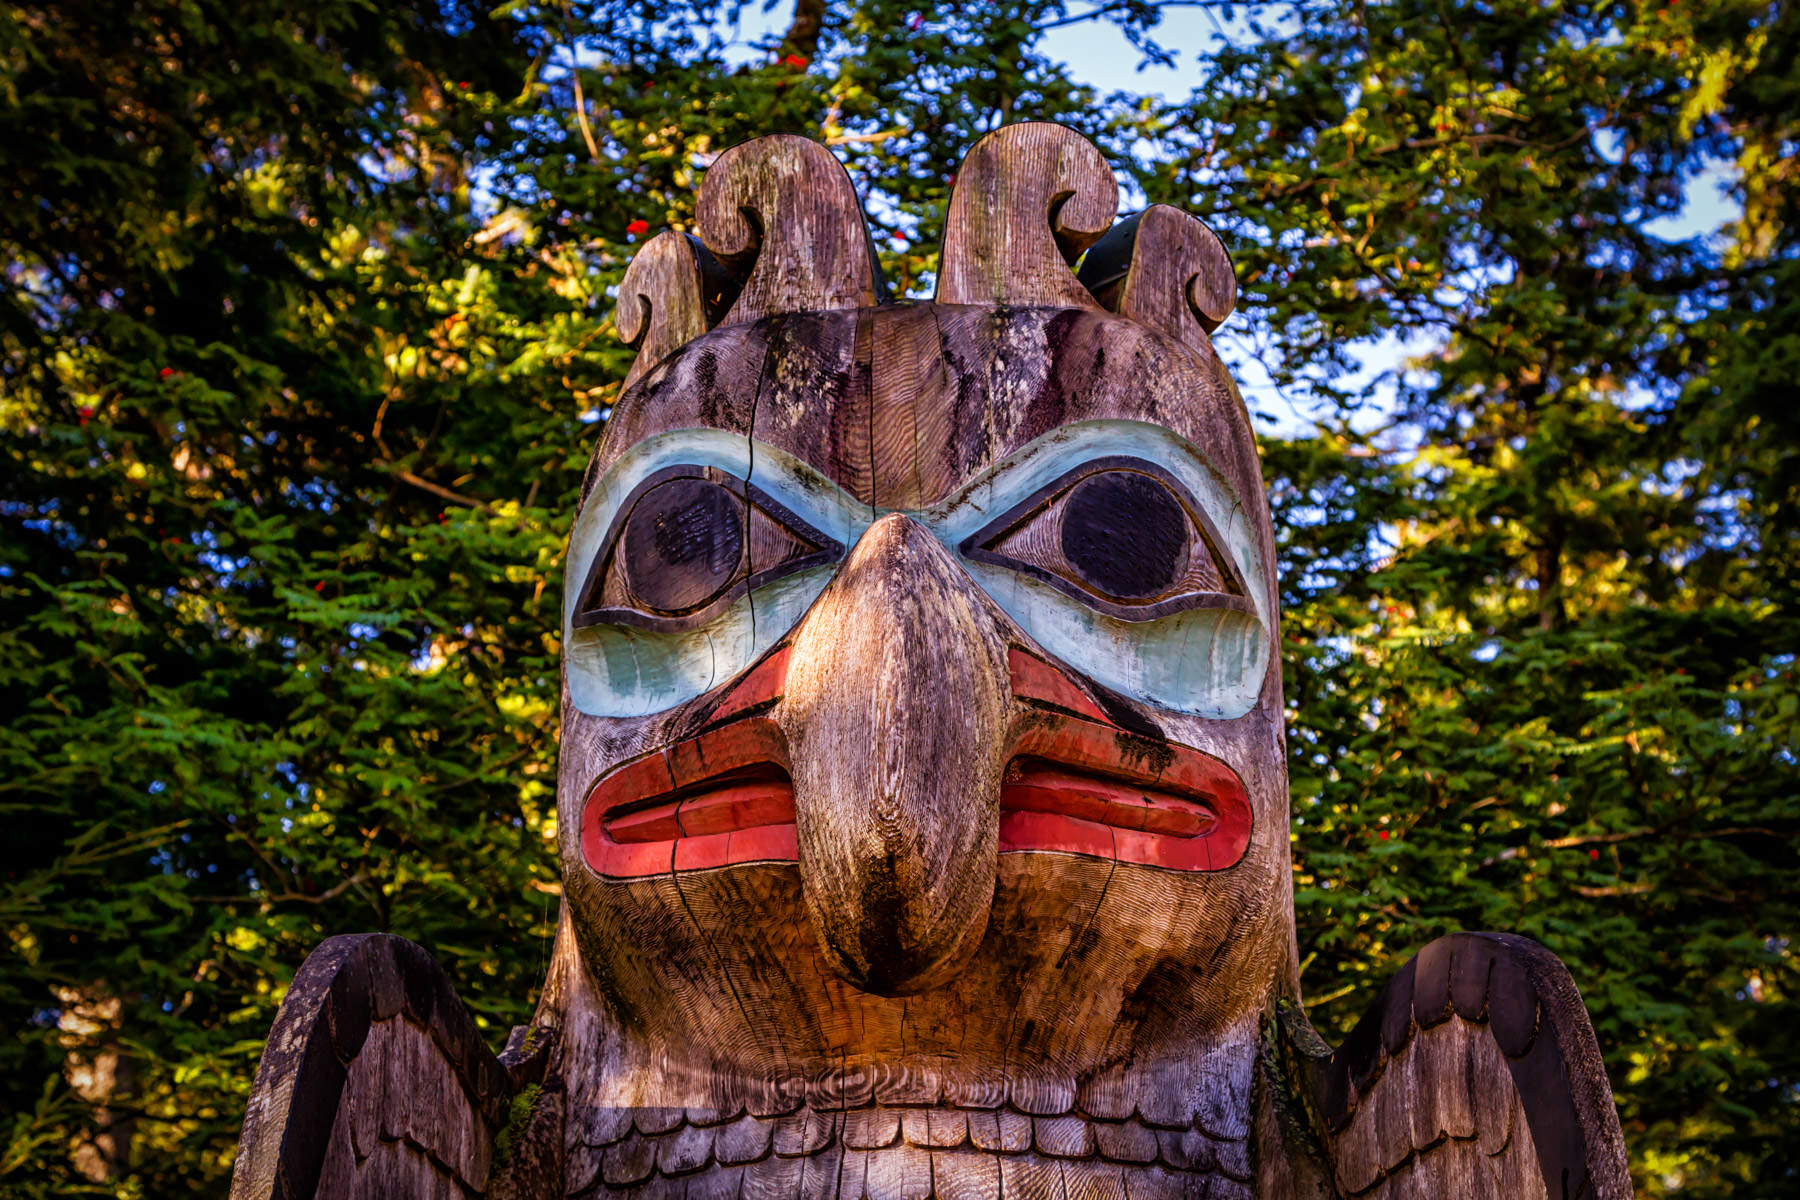 Detail of the Thunderbird and Whale totem pole at Ketchikan, Alaska's Totem Bight State Historical Park.